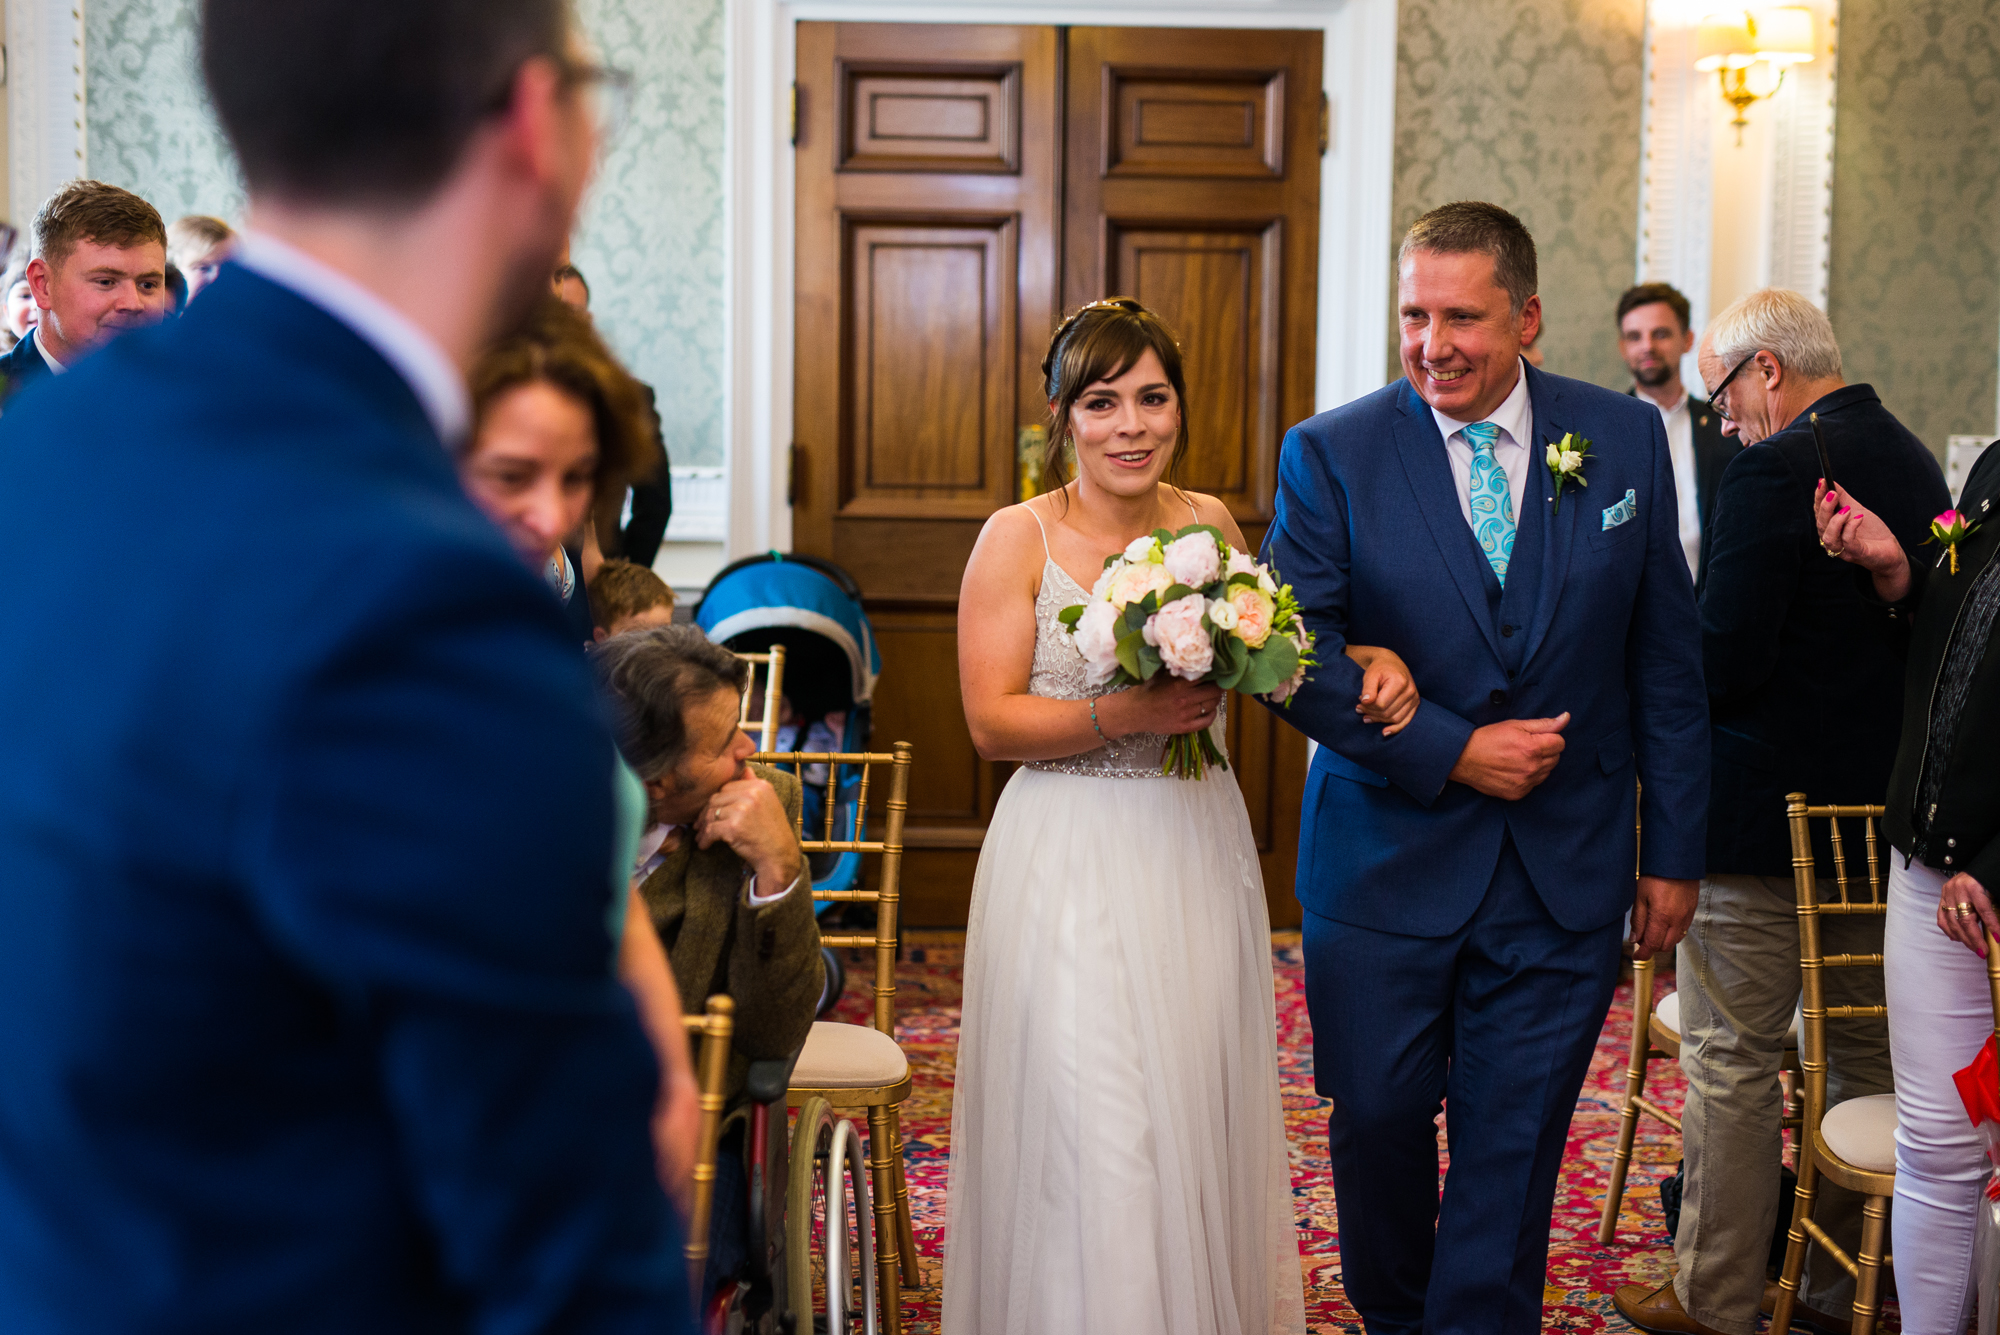 Crewe municipal building wedding10.jpg